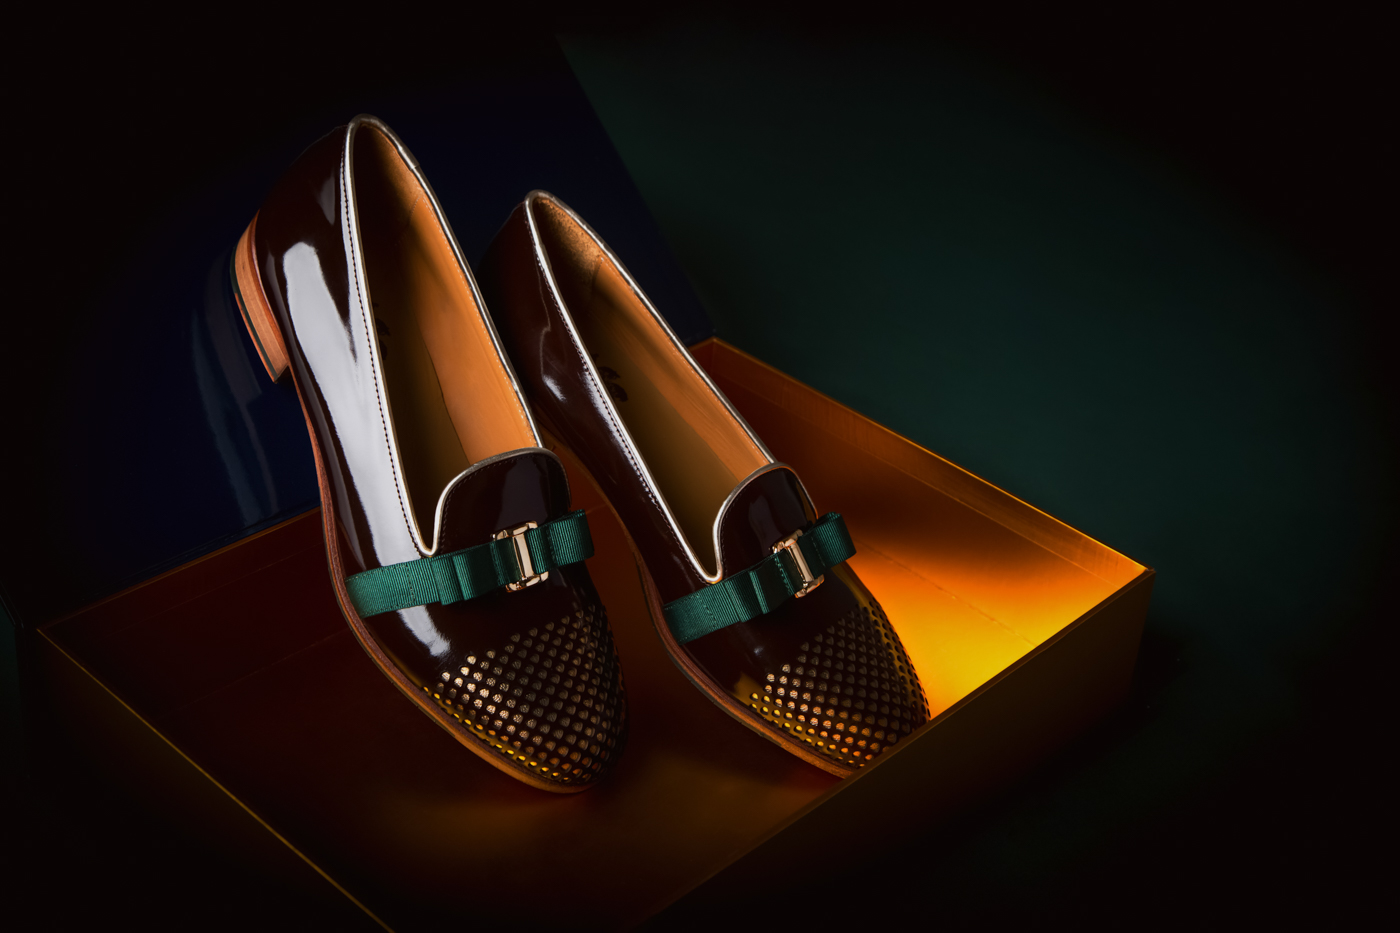 shoes-shoes-shoes-commercial-product-photography-ksenia-pro-photography-9